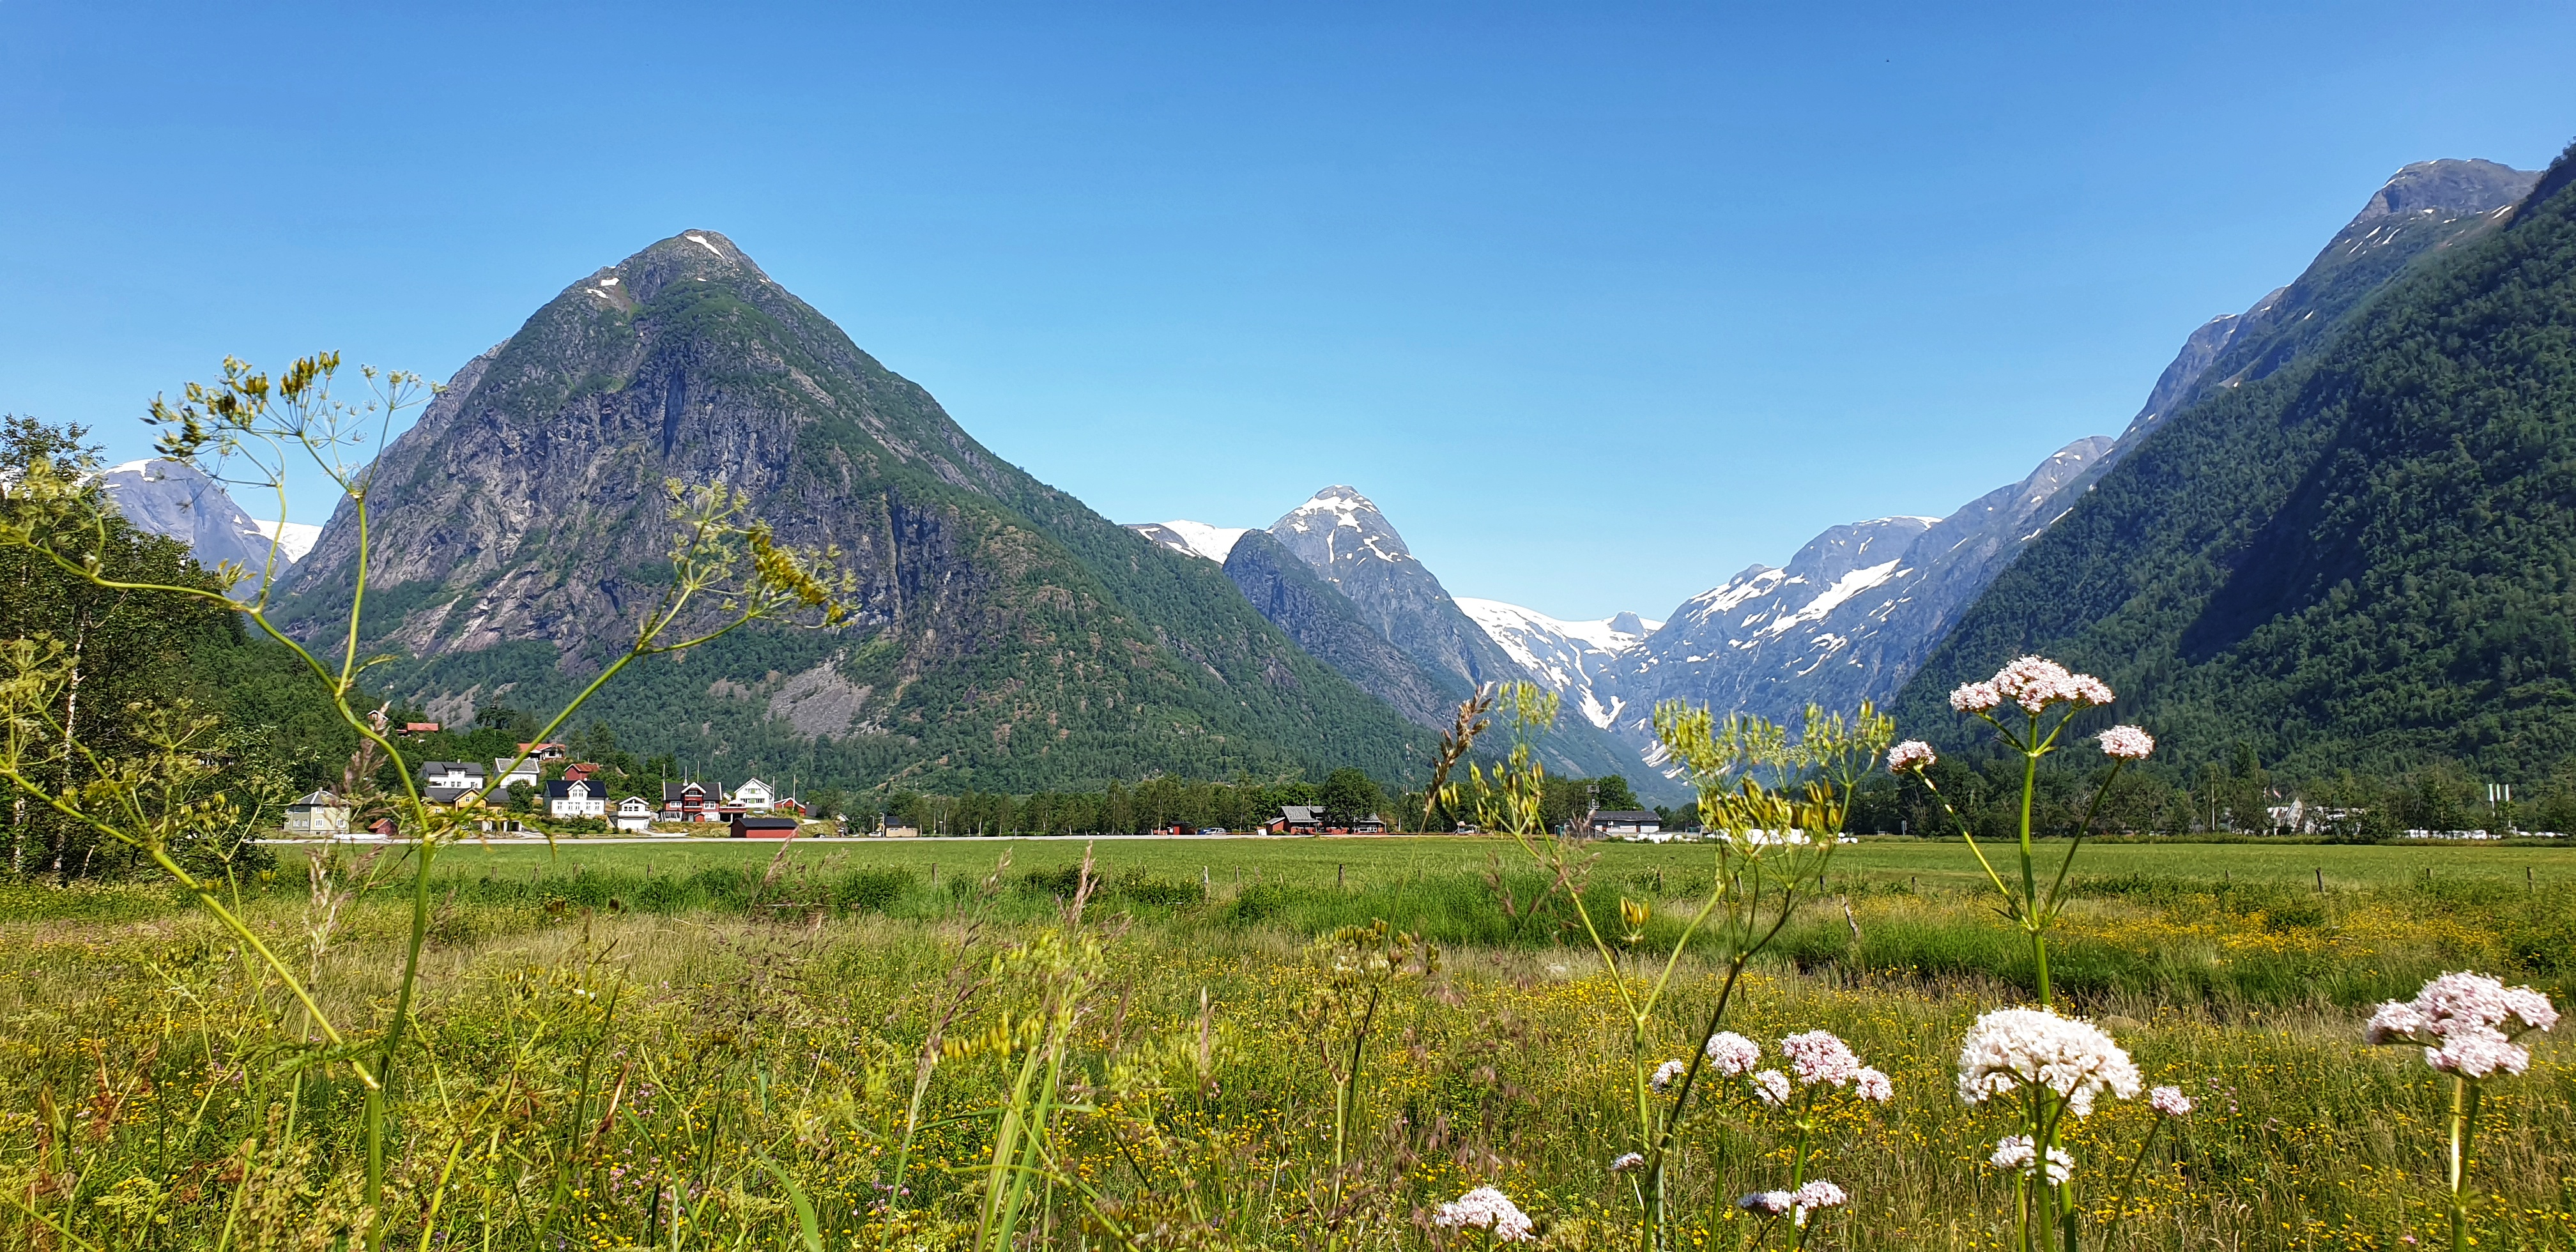 Flowers and fields in Fjærland with mountains and glacier behind